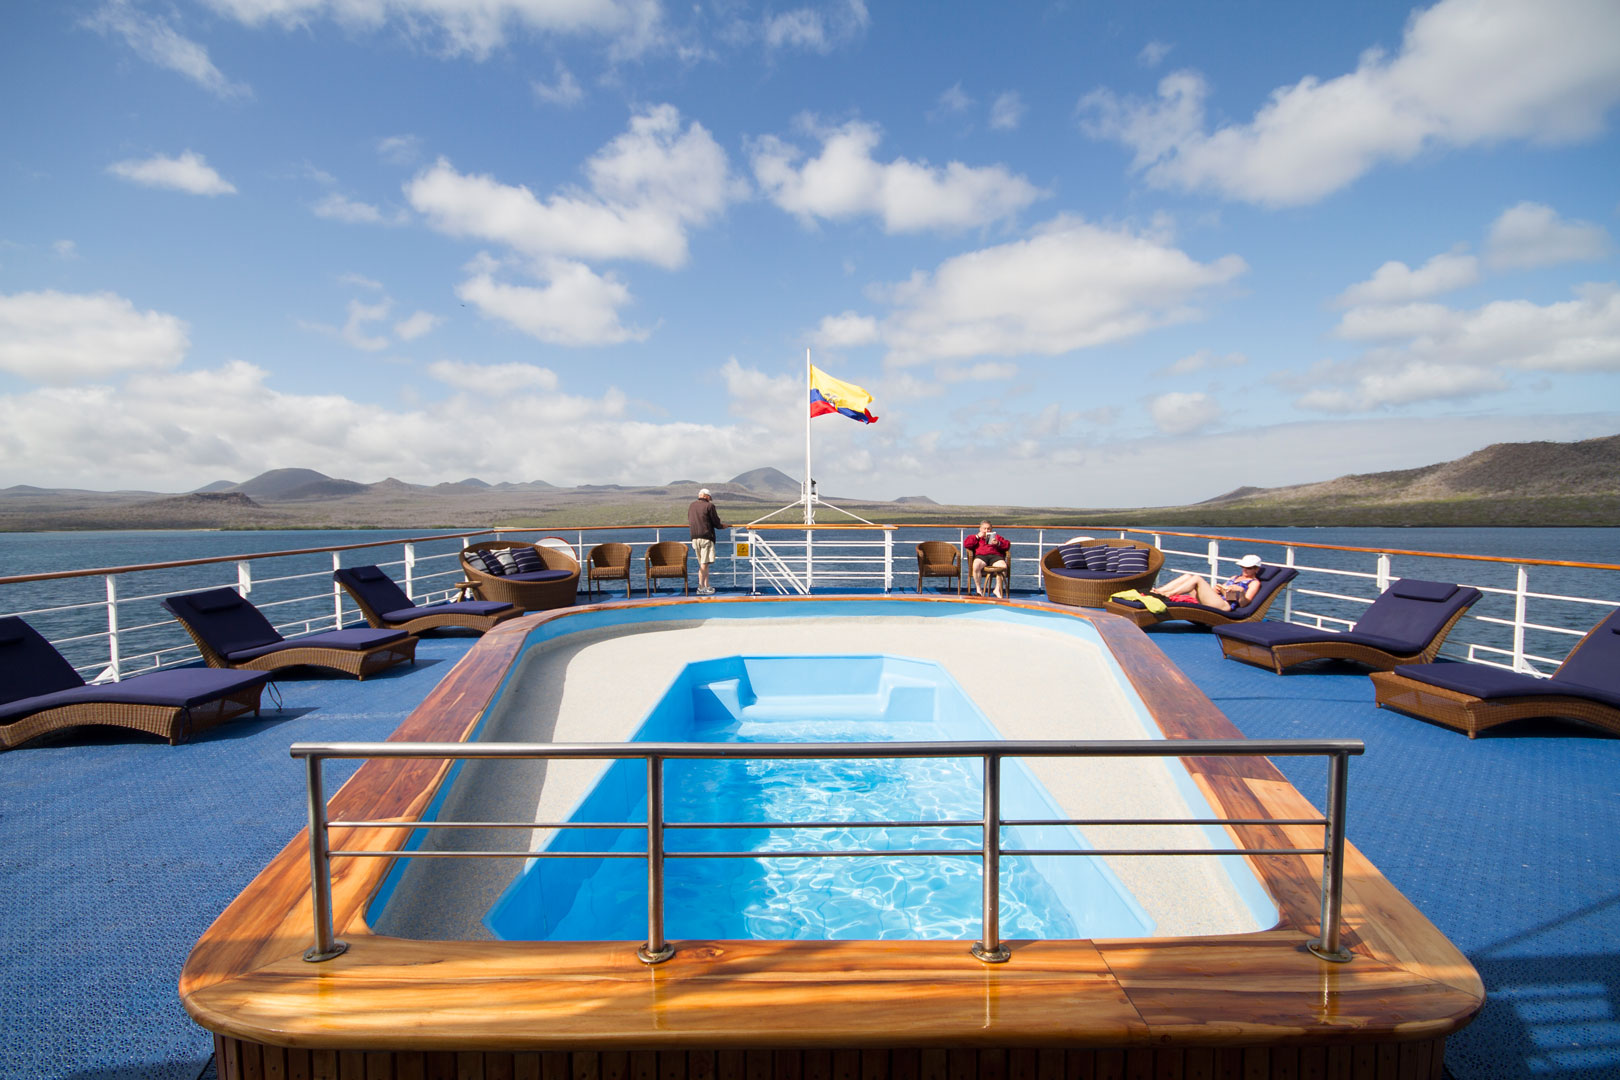 Galapagos Legend pool and terrace, enjoy with Southland Touring